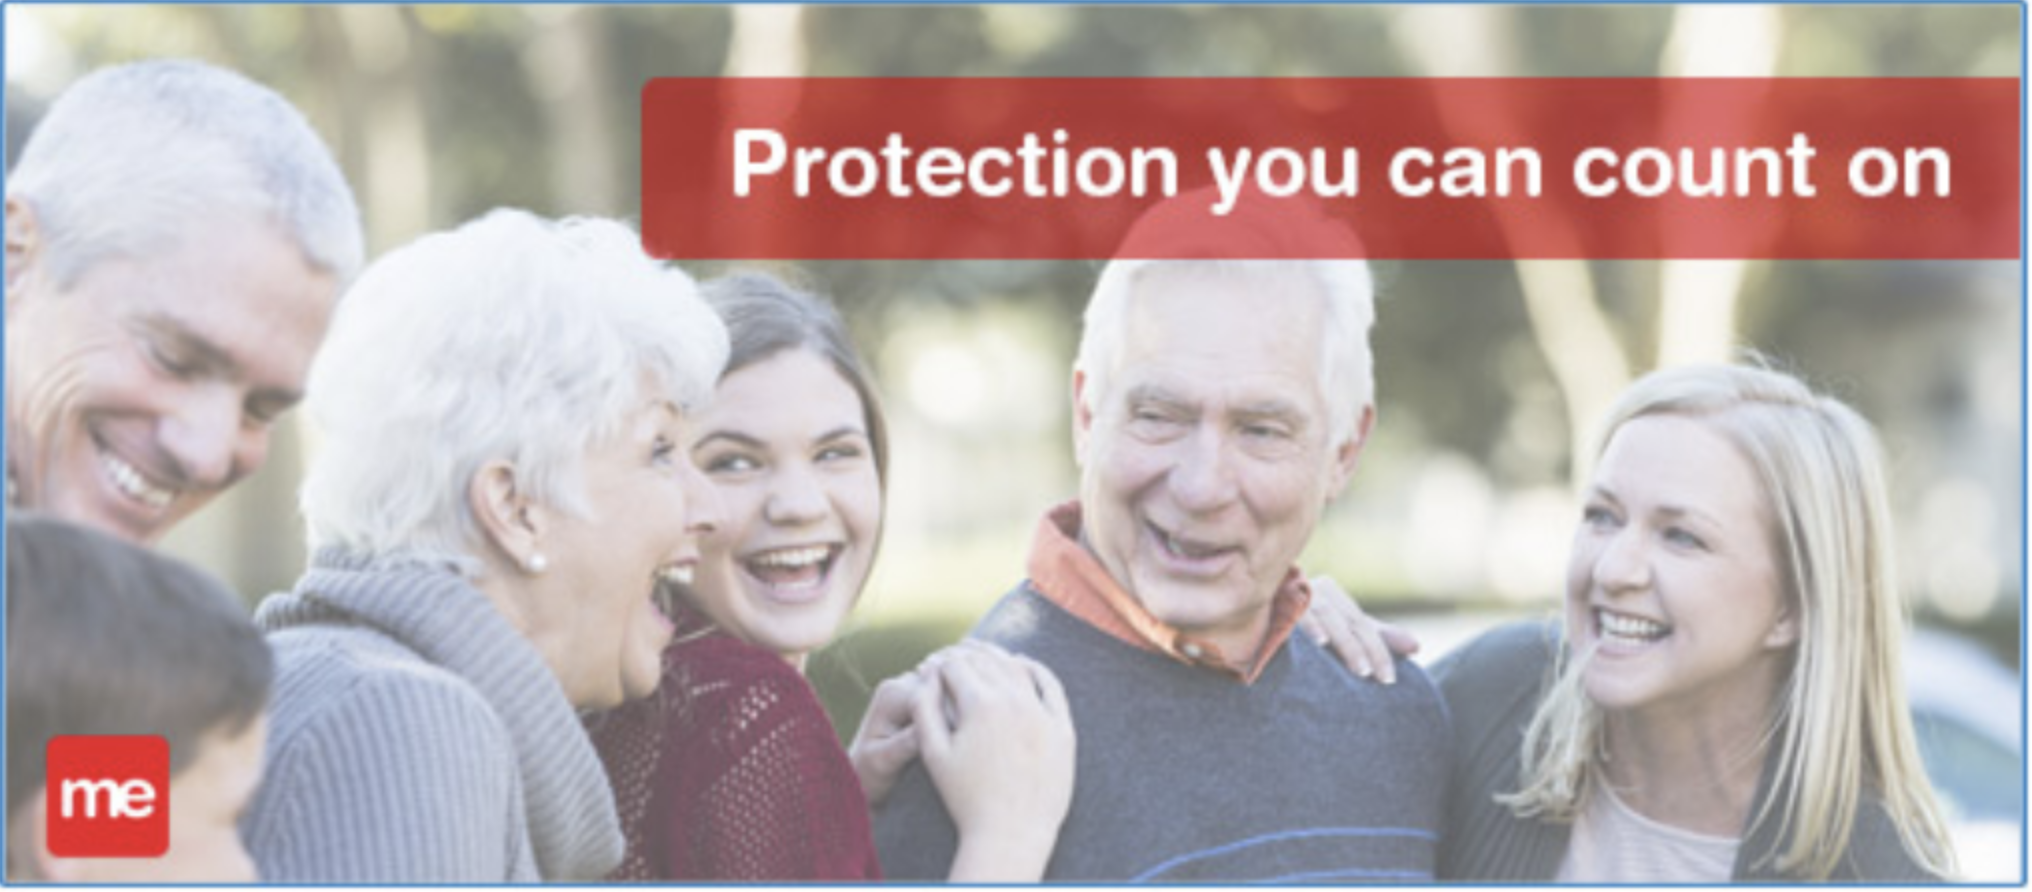 MyEssentials protection you can count on